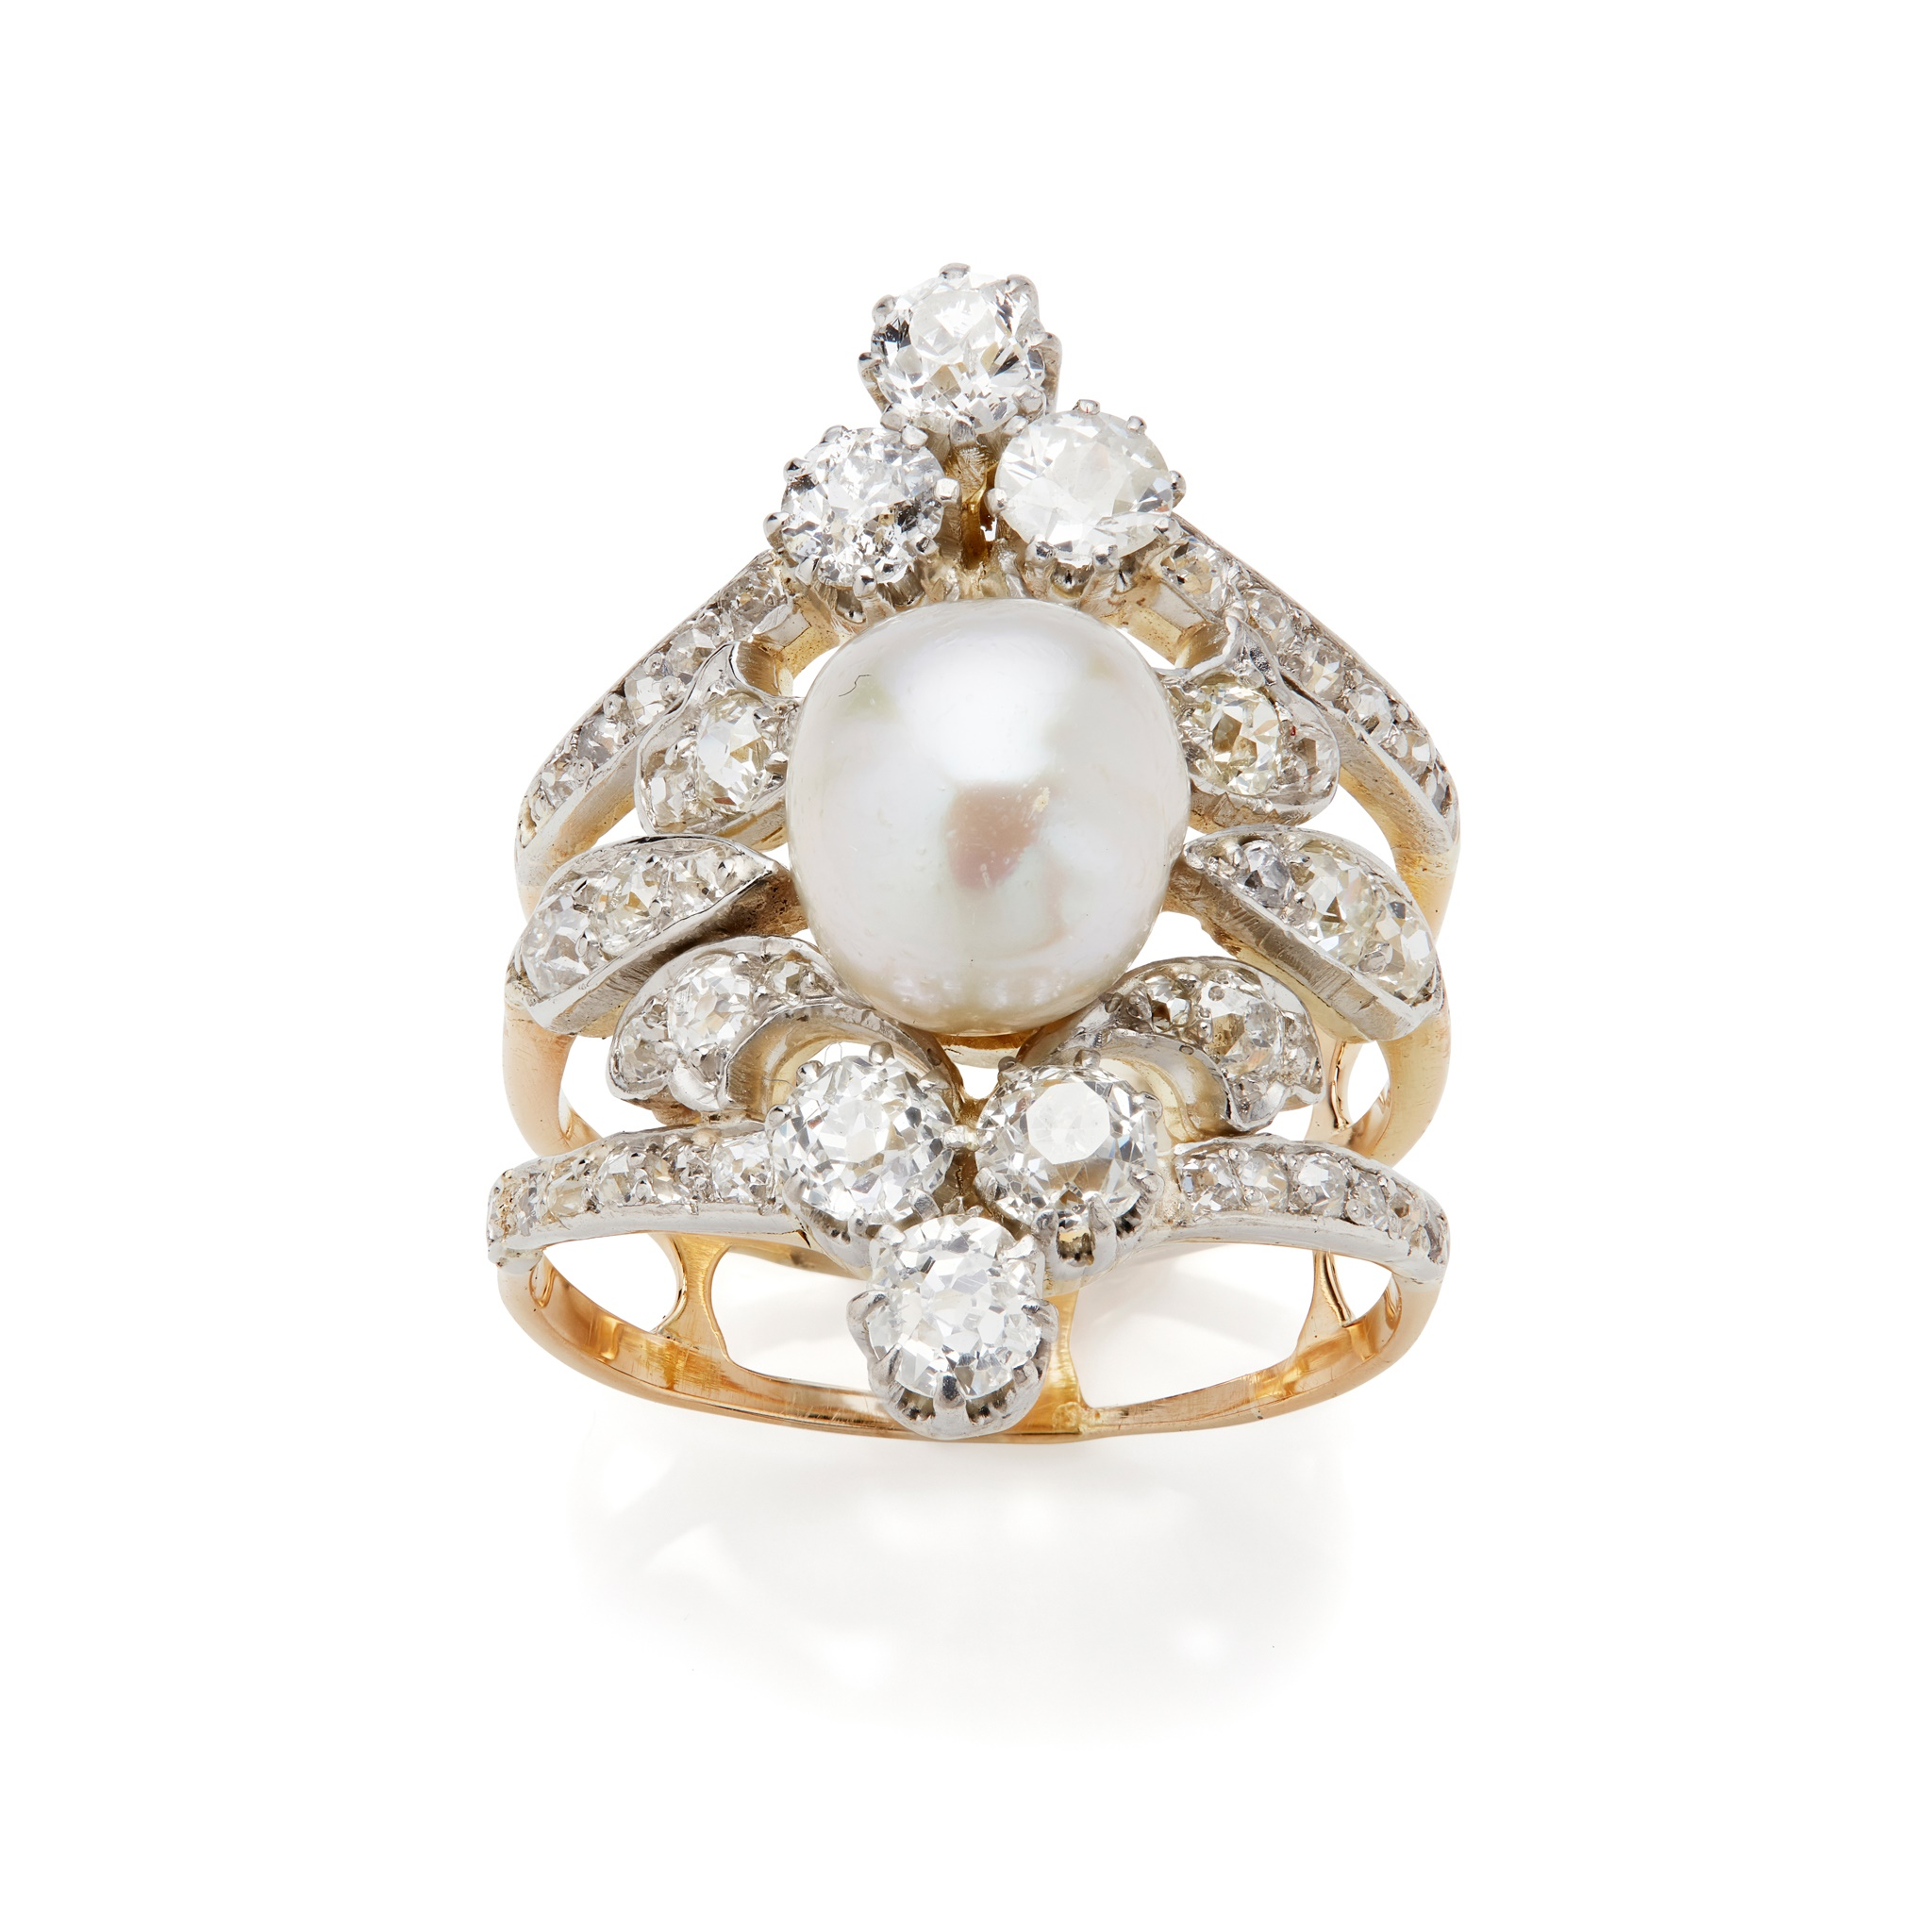 An early 20th century natural pearl and diamond ring The 8.73 x 7.87mm natural pearl mounted on a - Image 4 of 6